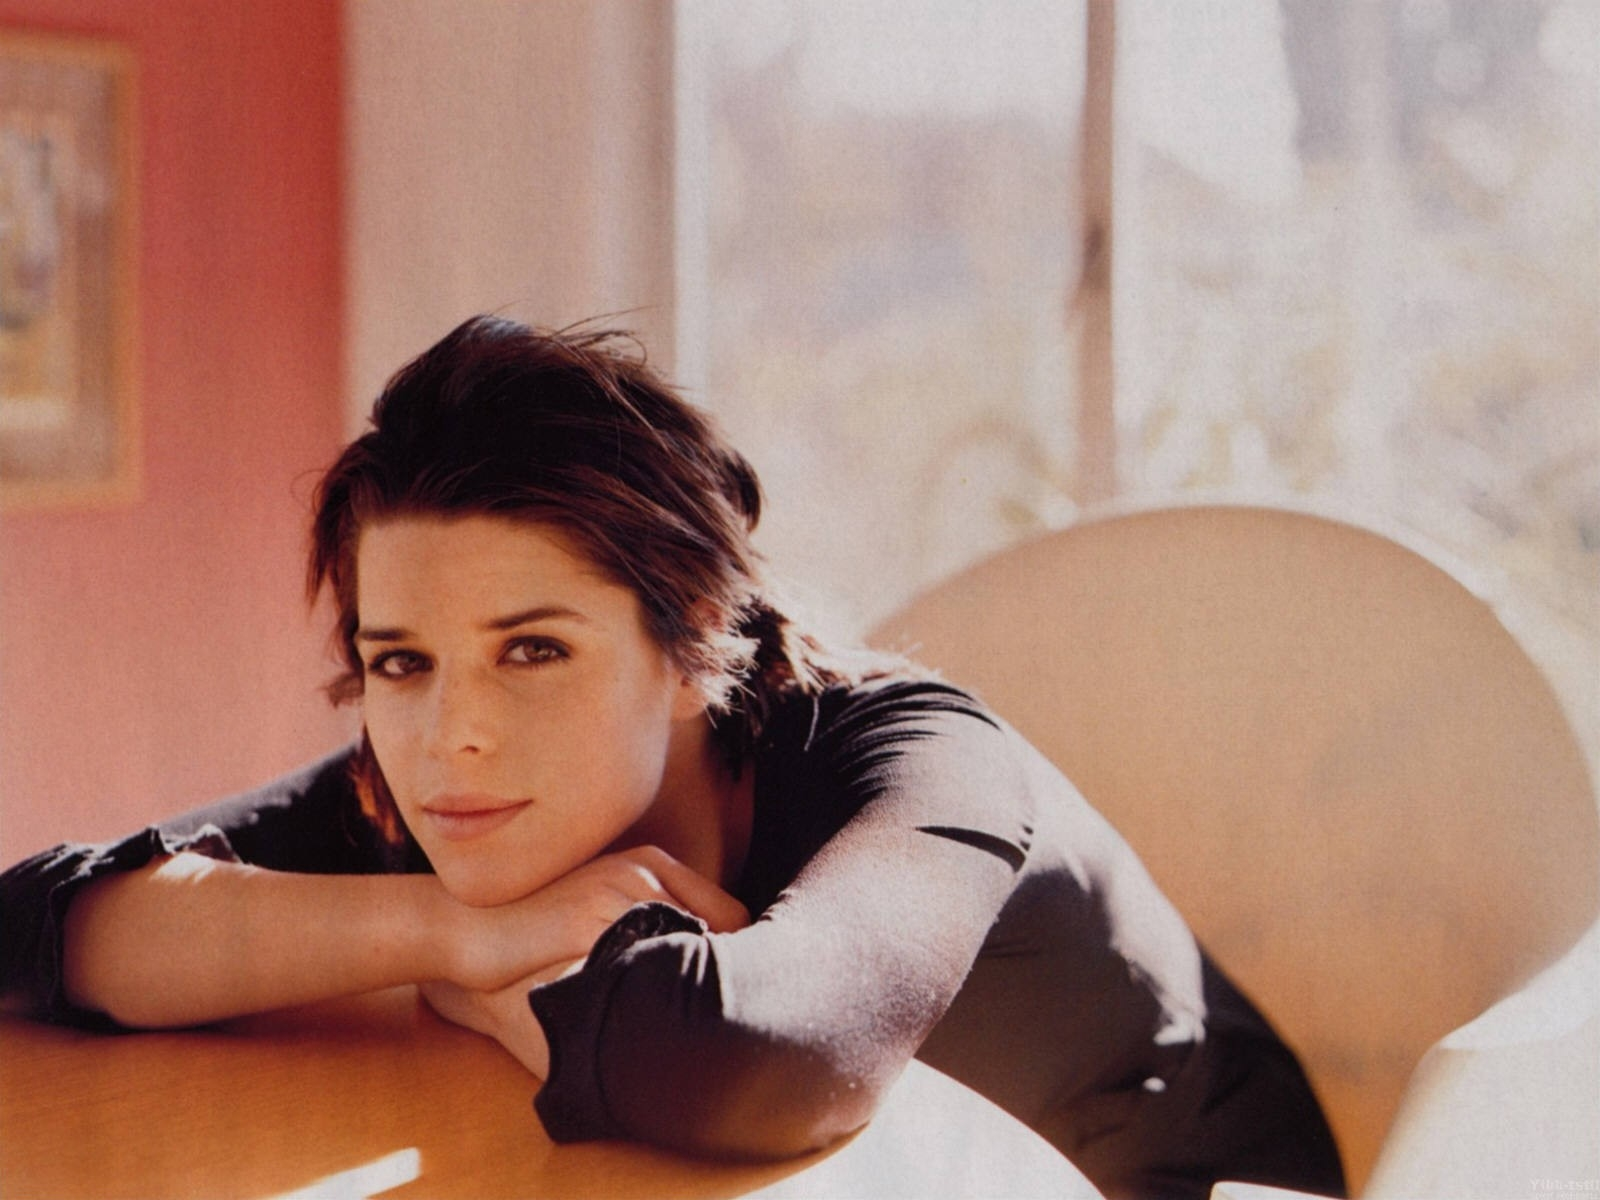 Wallpaper dell'attrice Neve Campbell